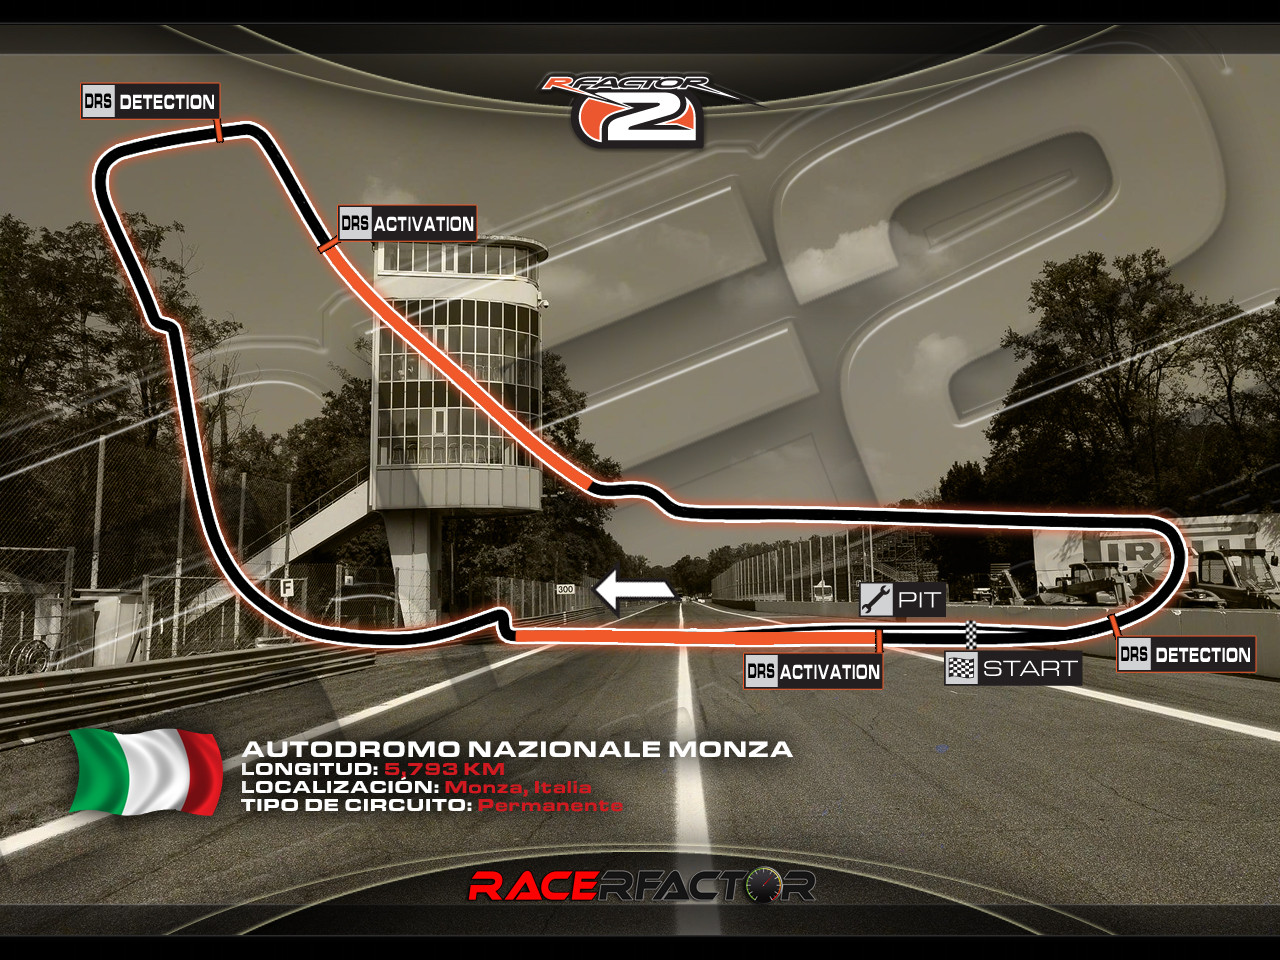 RaceRfactor Monza 2014 v1 96 by McNolo